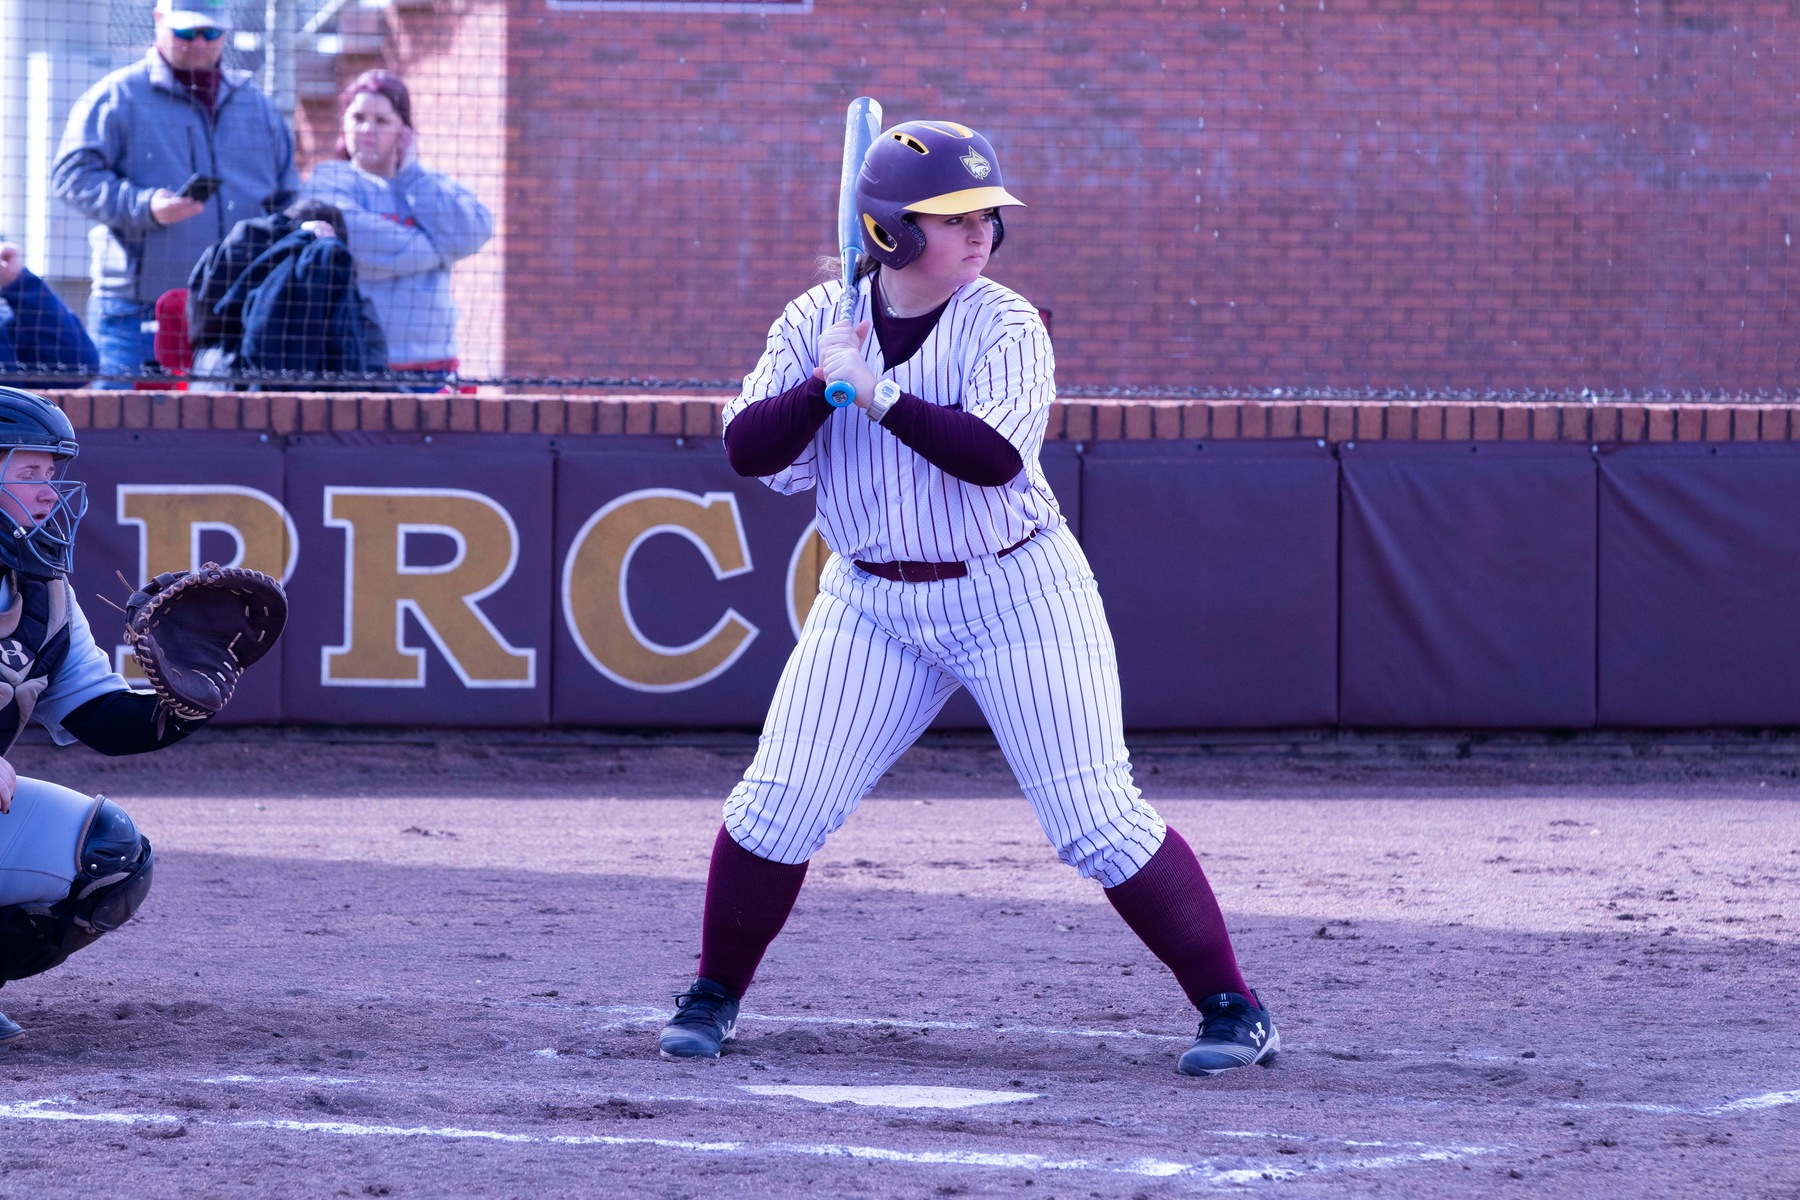 Jenna Comeaux hit two homers in Pearl River's 17-9 loss to LSU-Eunice on Friday in Game 2 of the annual Wildcat Invitational at Lady Wildcat Stadium in Poplarville, Miss. (KRISTI HARRIS/PRCC ATHLETICS)